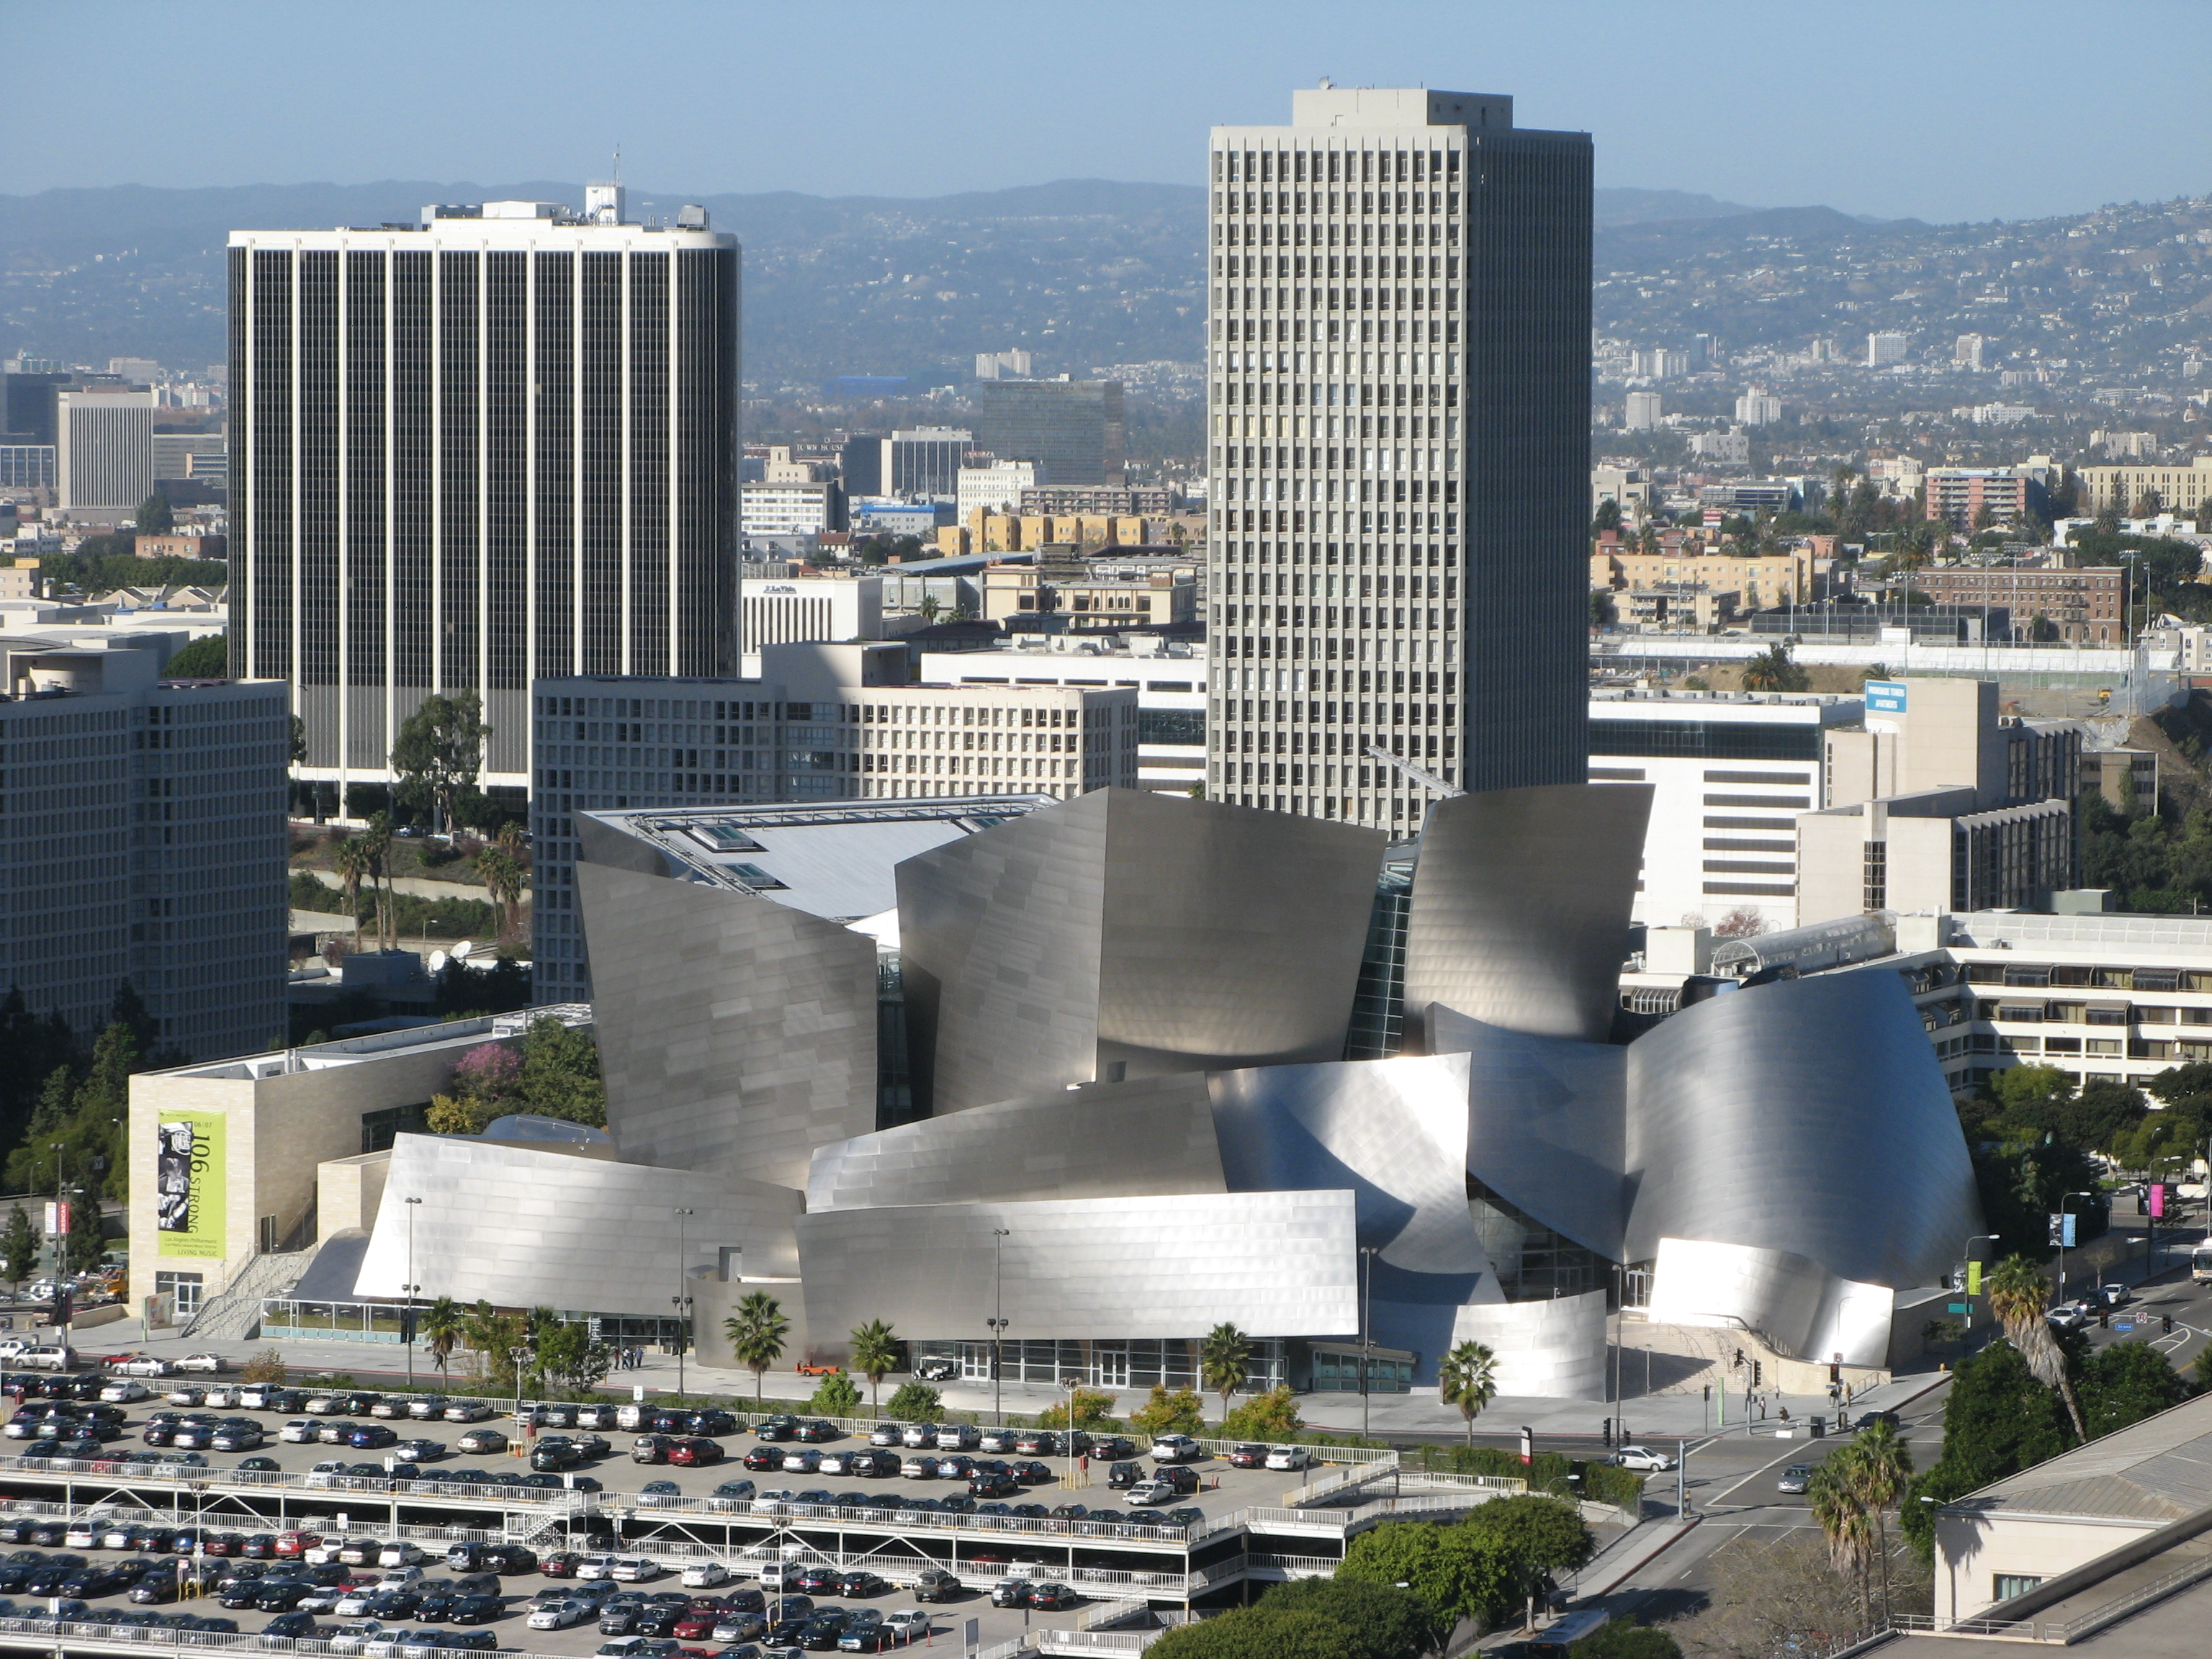 http://upload.wikimedia.org/wikipedia/commons/1/14/Walt_Disney_Concert_Hall_and_surrounding_area.jpg